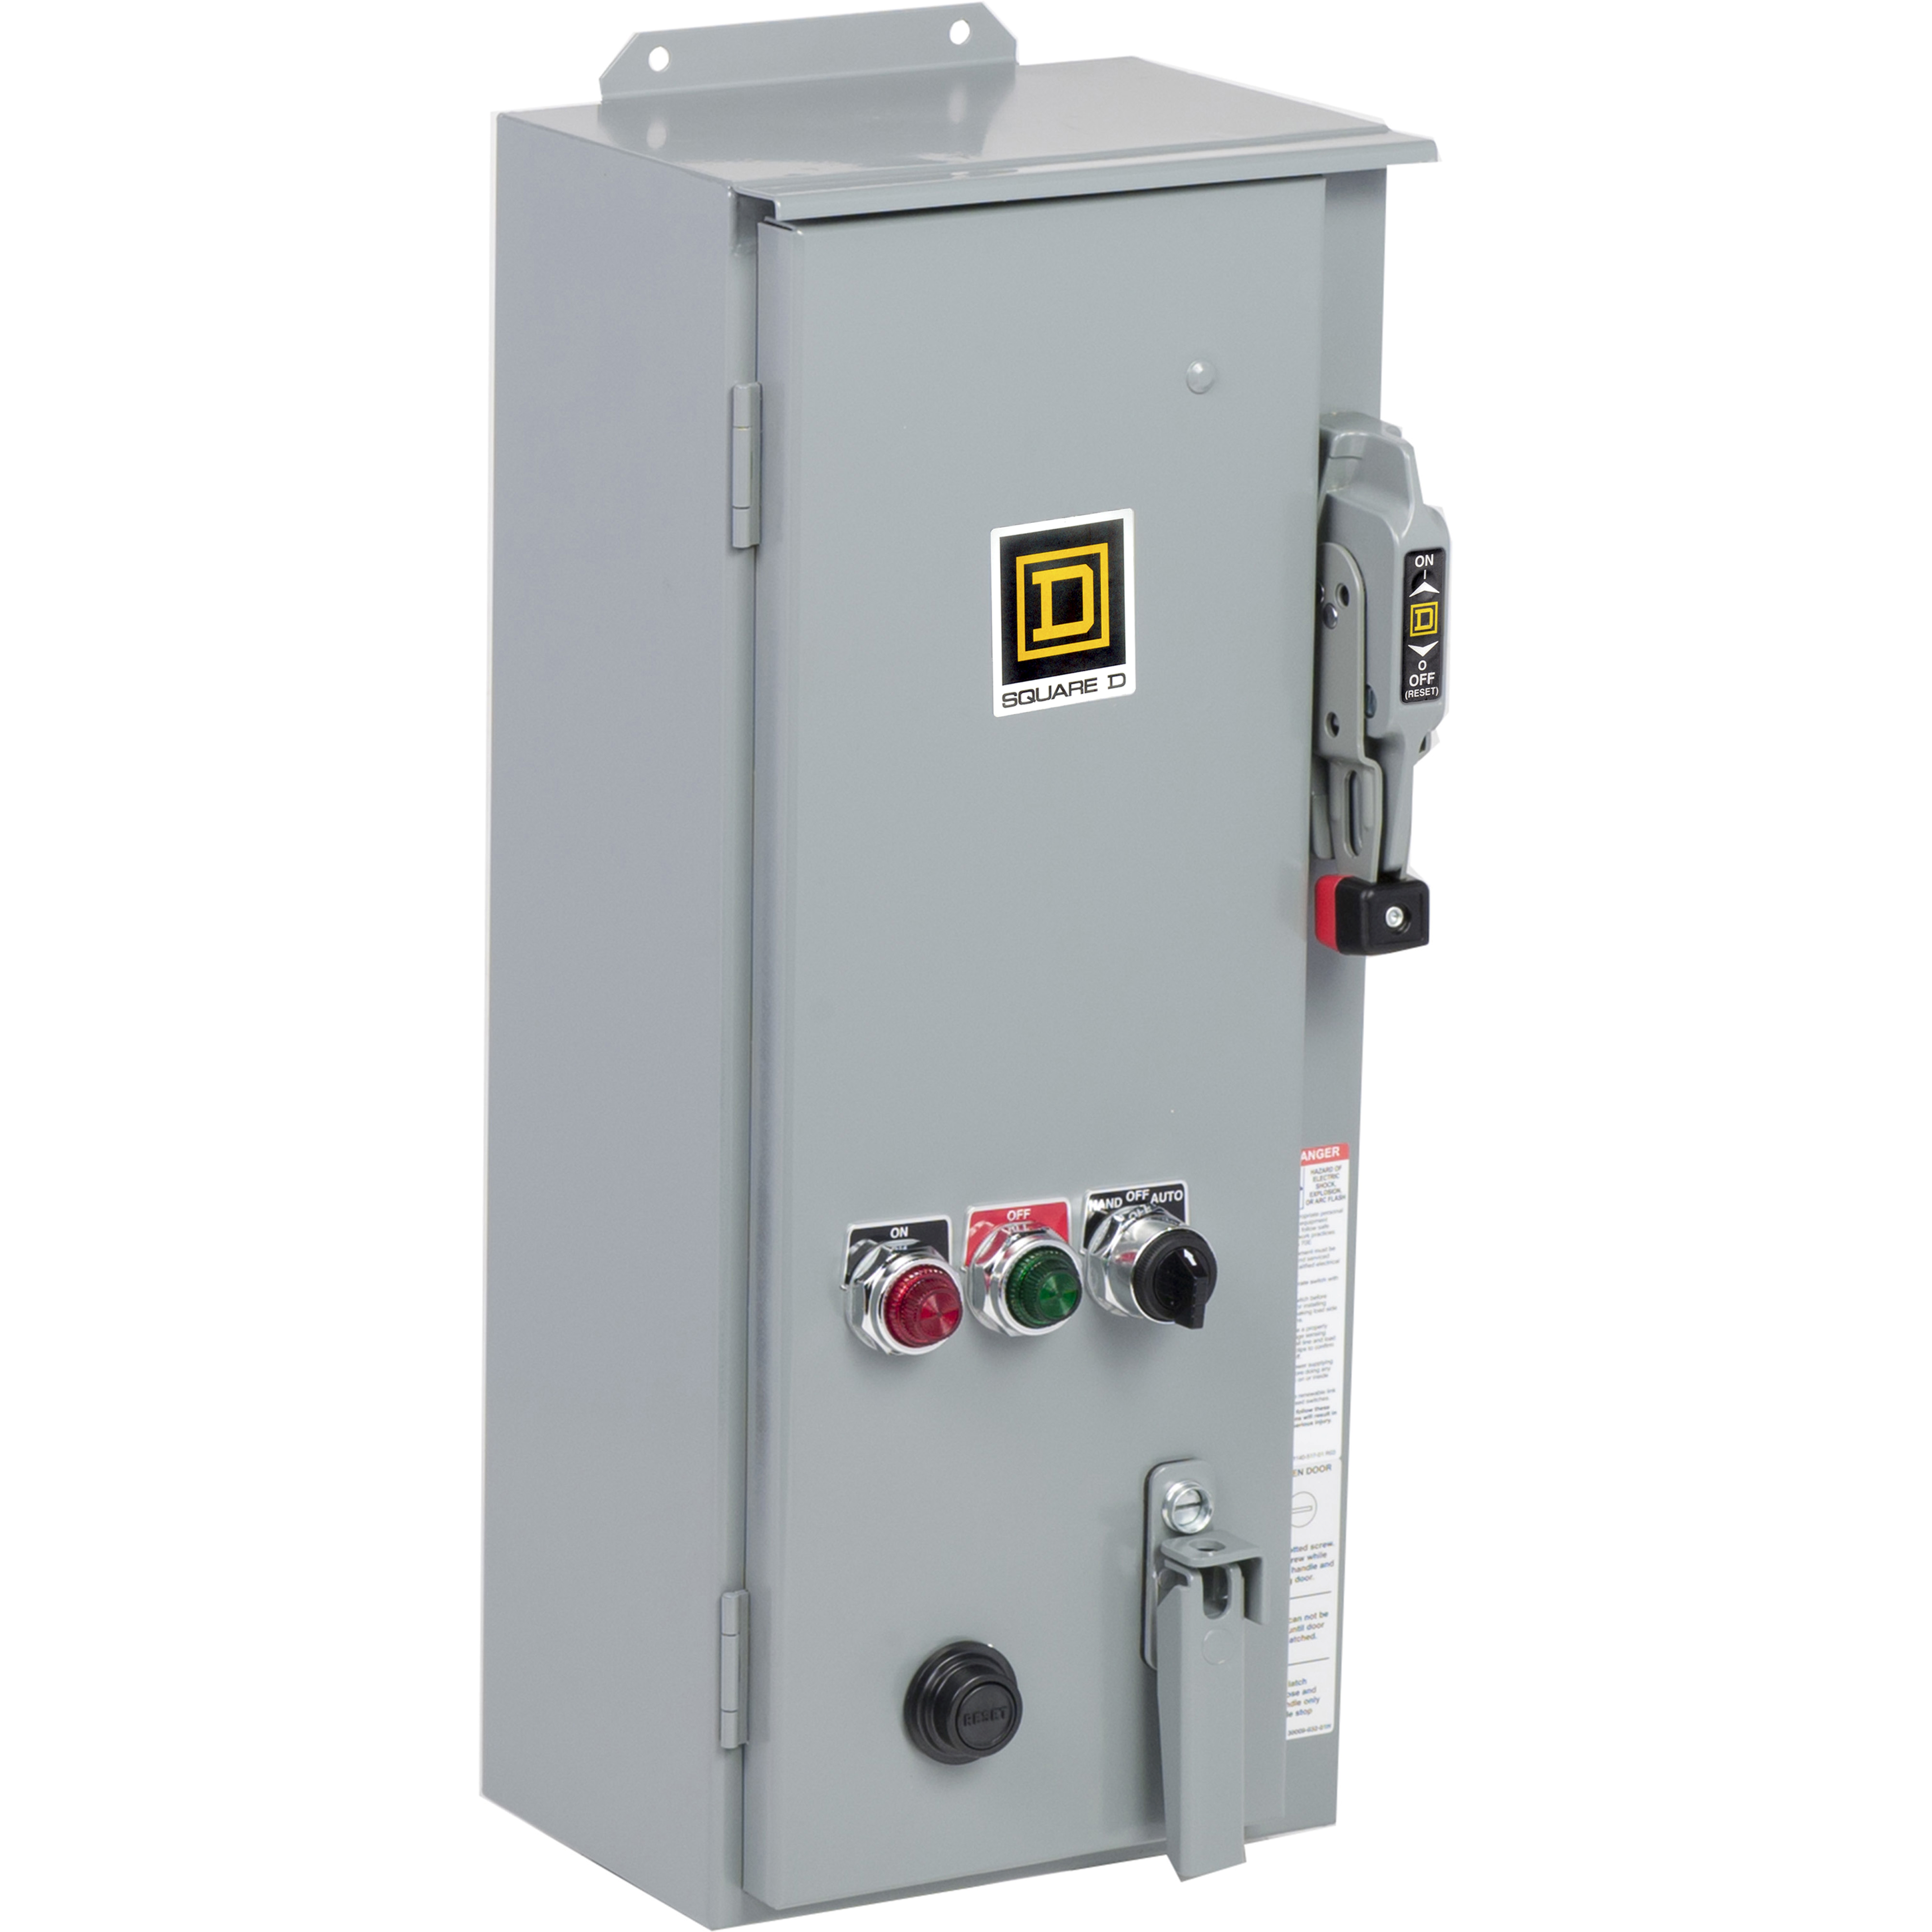 SQUARE D Combination Starter, Type S, fusible disconnect, Size 2, 45A, 3 pole, 120VAC coil, melting alloy overload, NEMA 3R/12